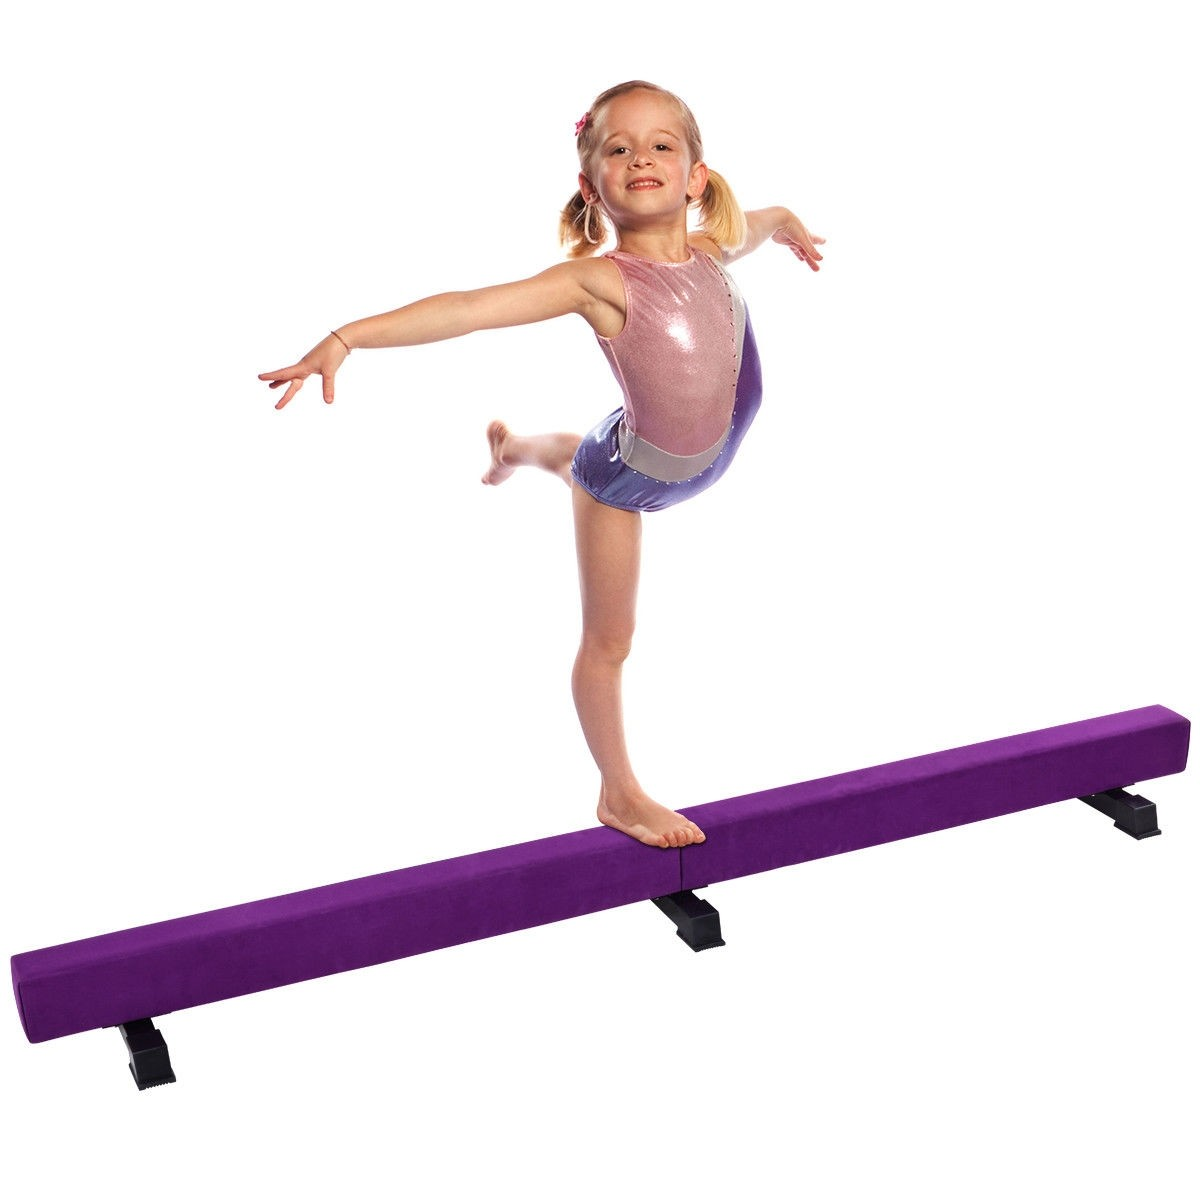 8fb493784250 8 ft Gymnastics Kids Suede Training Floor Balance Beam – By Choice ...